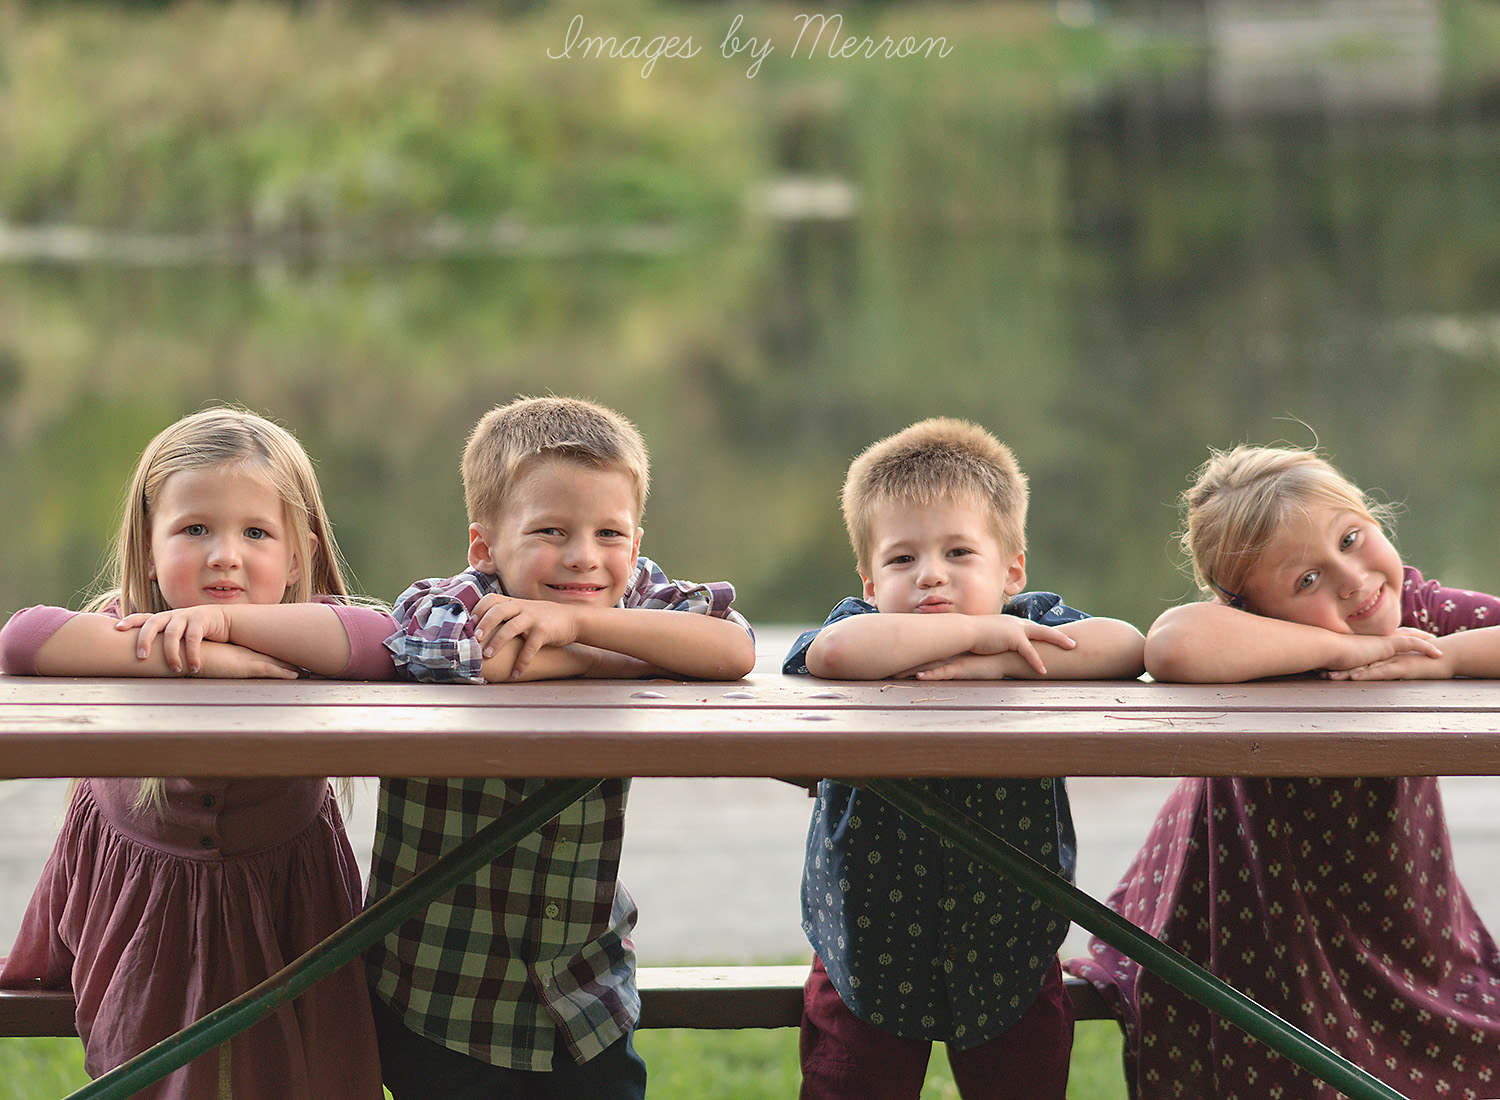 Four young cousins resting arms on picnic table, posing for photo session